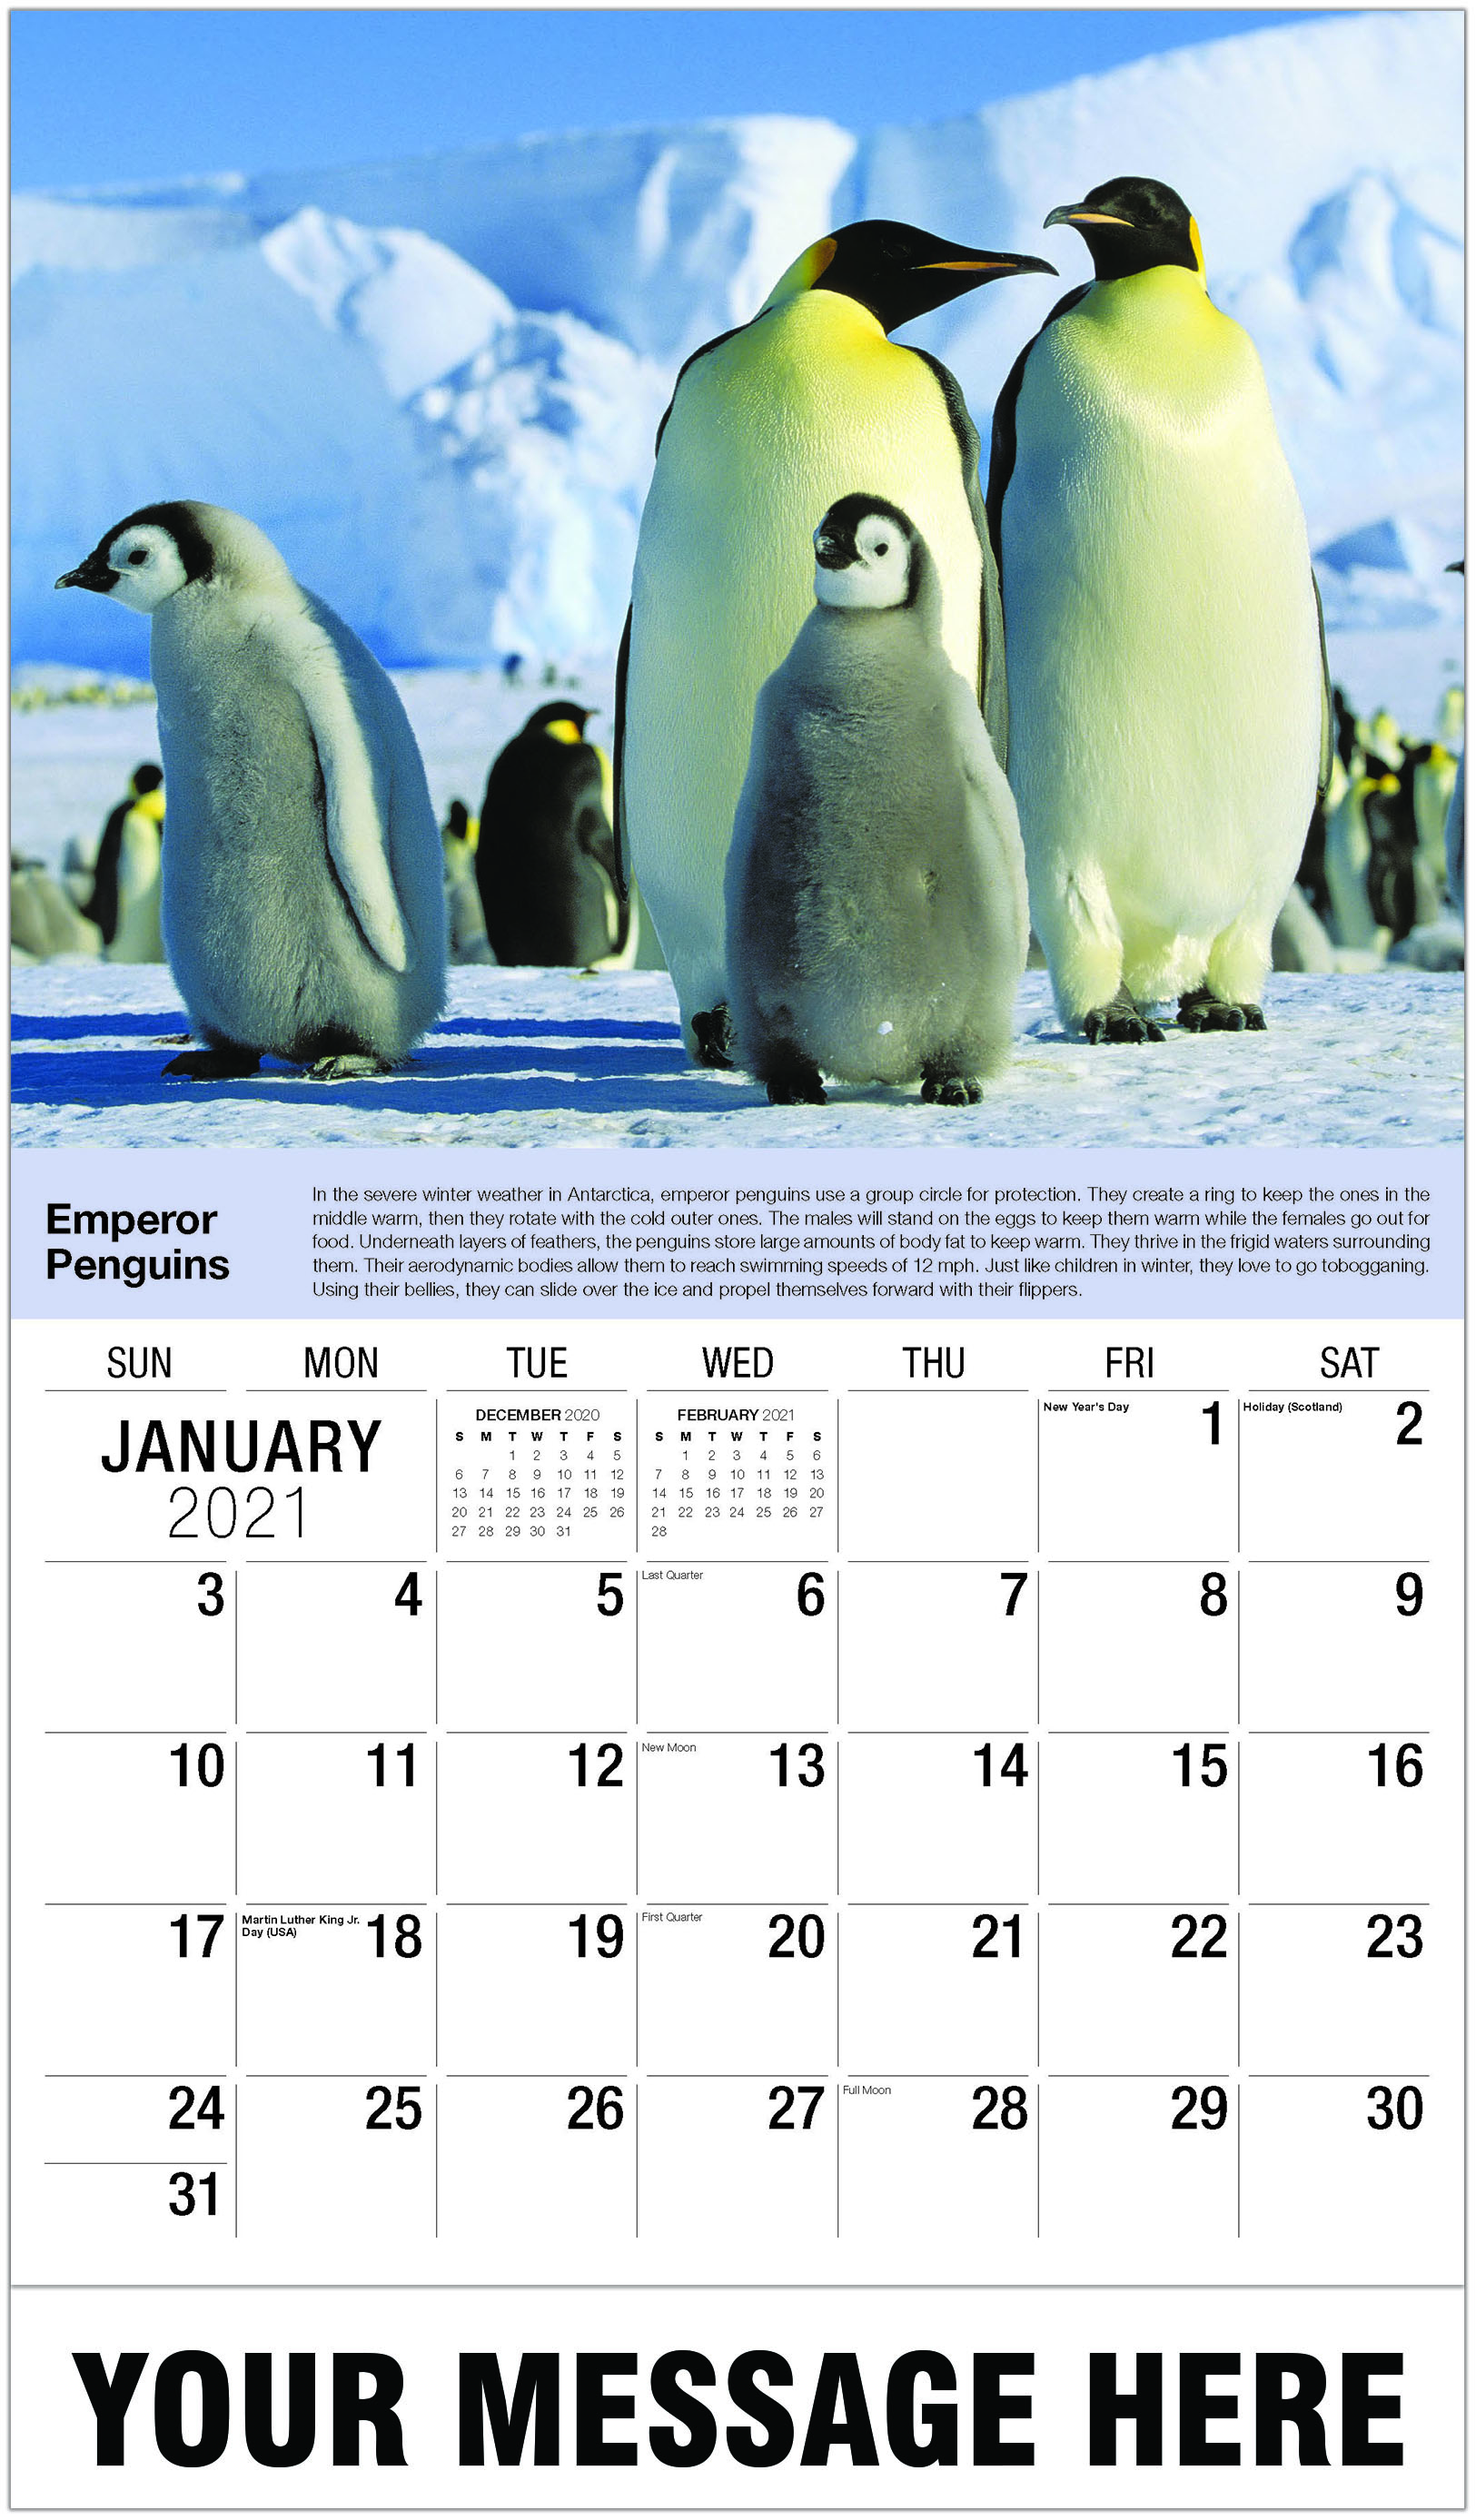 Emperor Penguins - January - International Wildlife 2021 Promotional Calendar